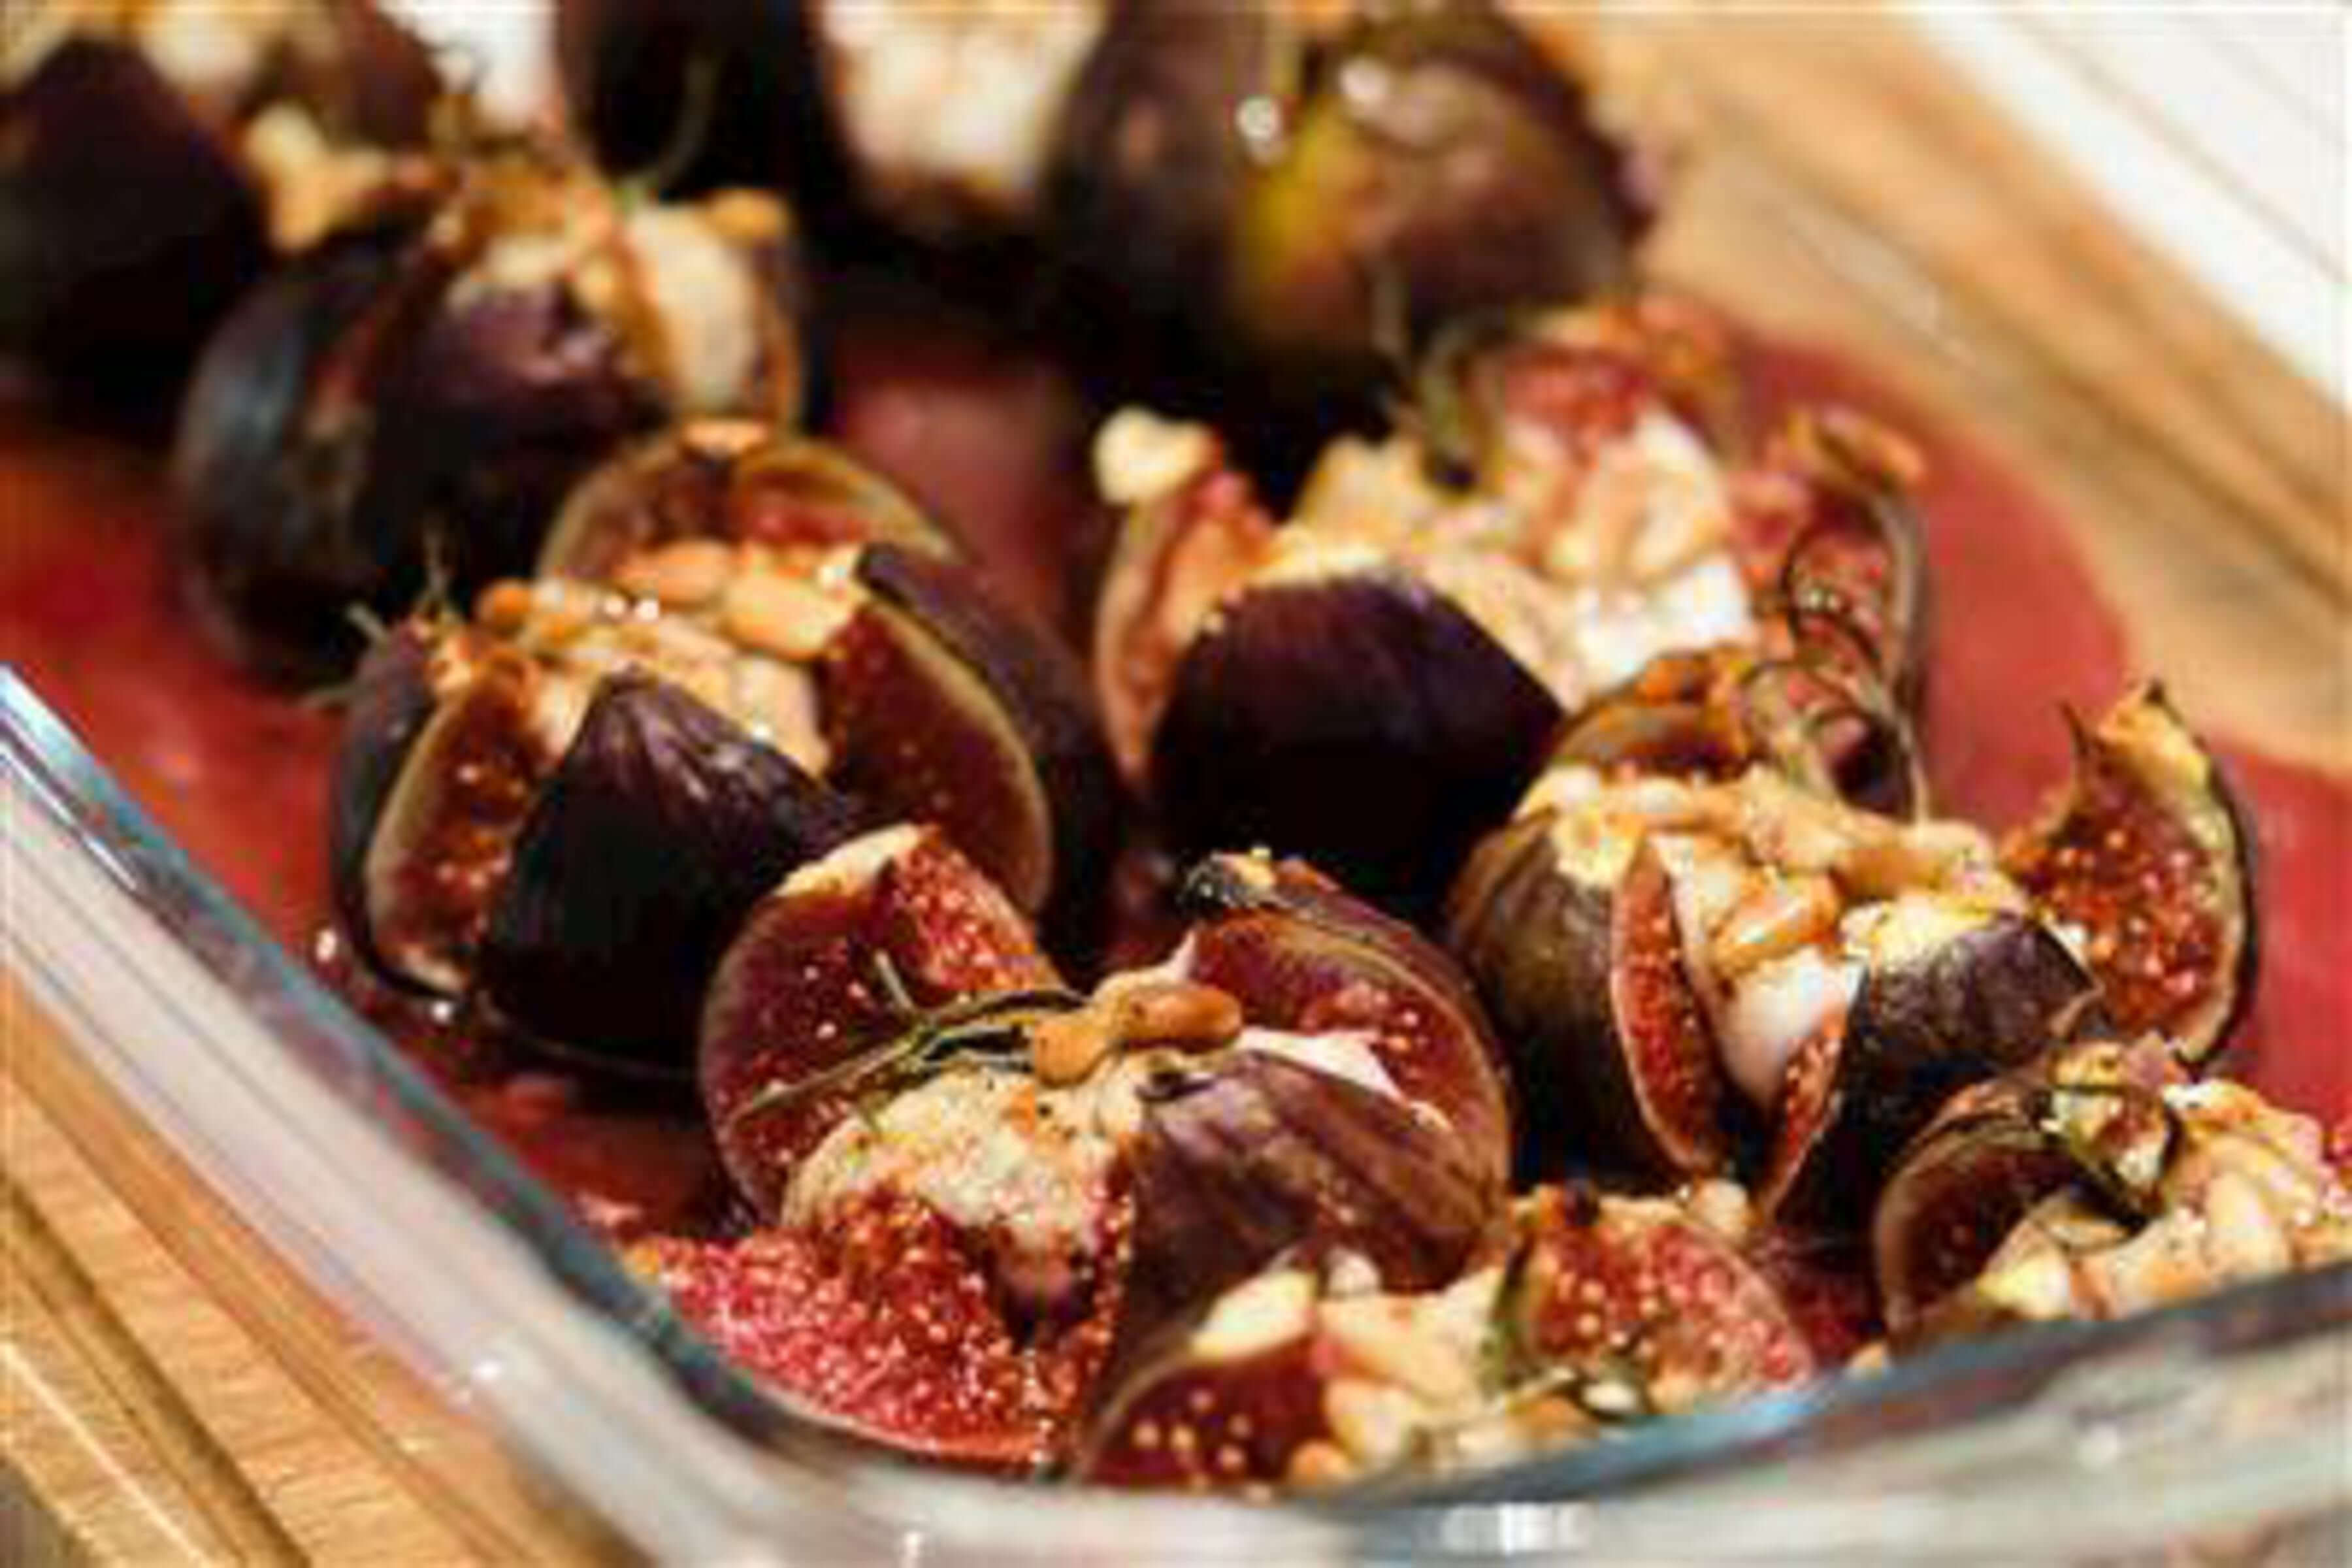 Stuffed Figs With Goat Cheese Recipe